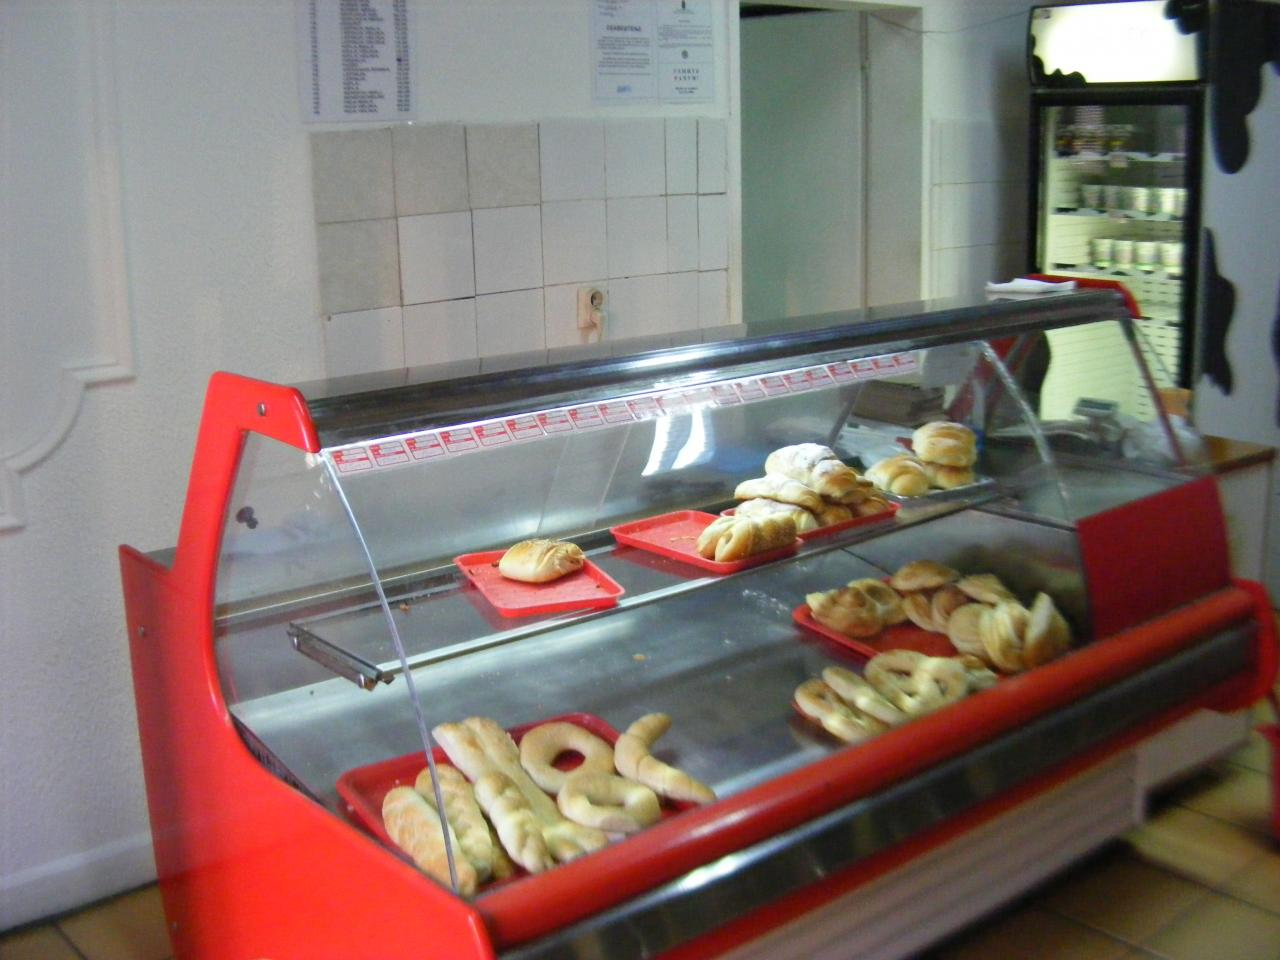 BAKERY BOBAN Bakeries Smederevo - Photo 2